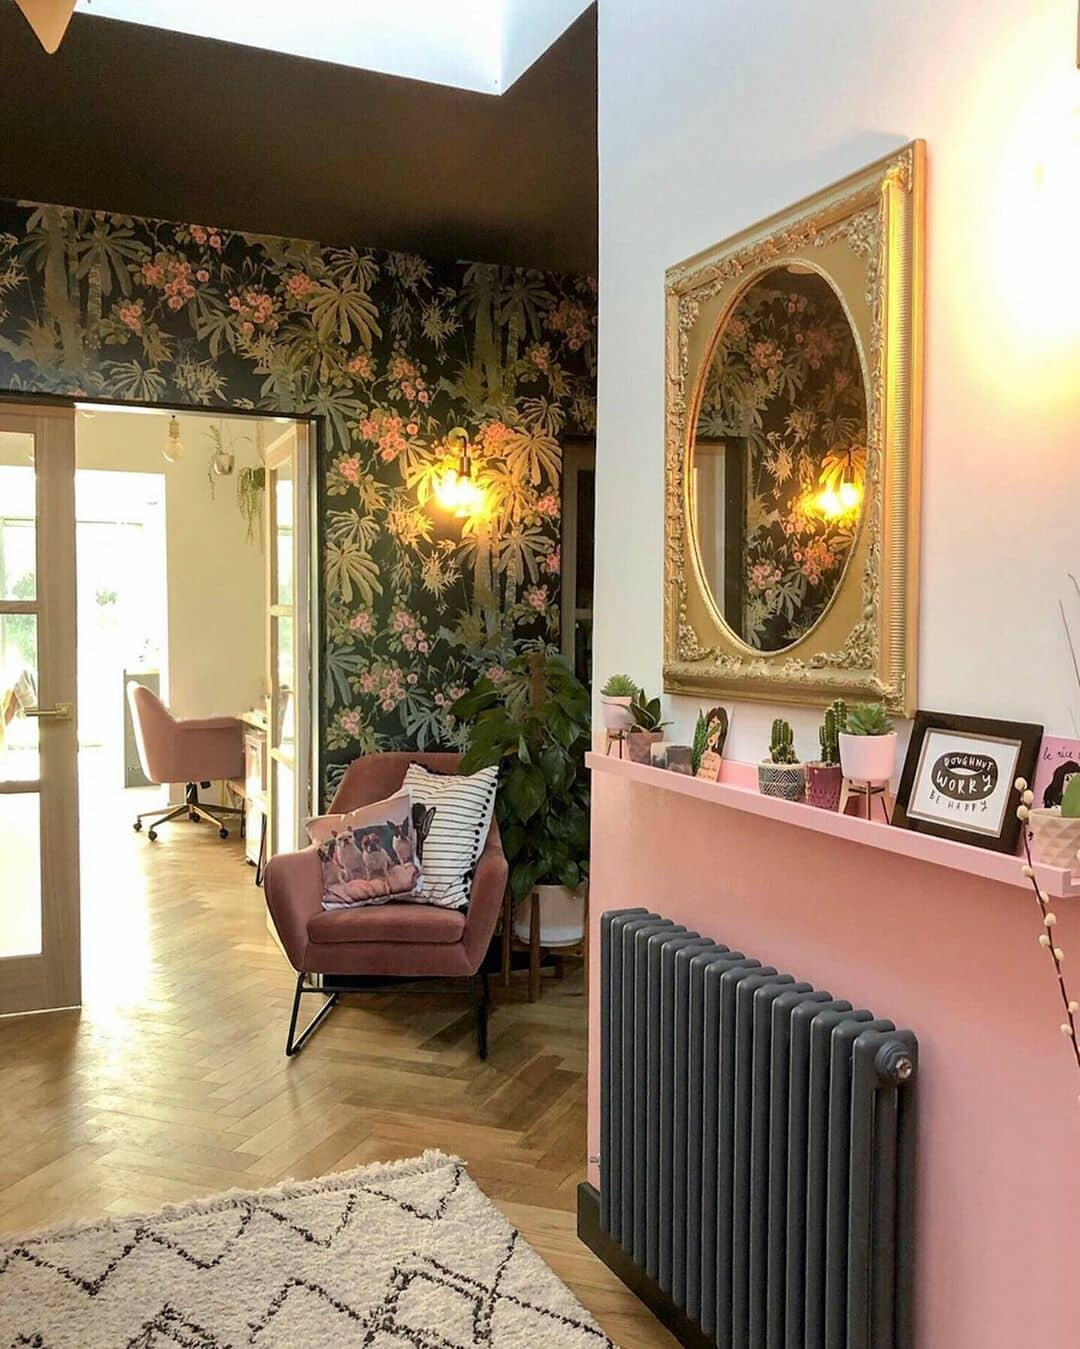 anthracite column radiator on a pink wall